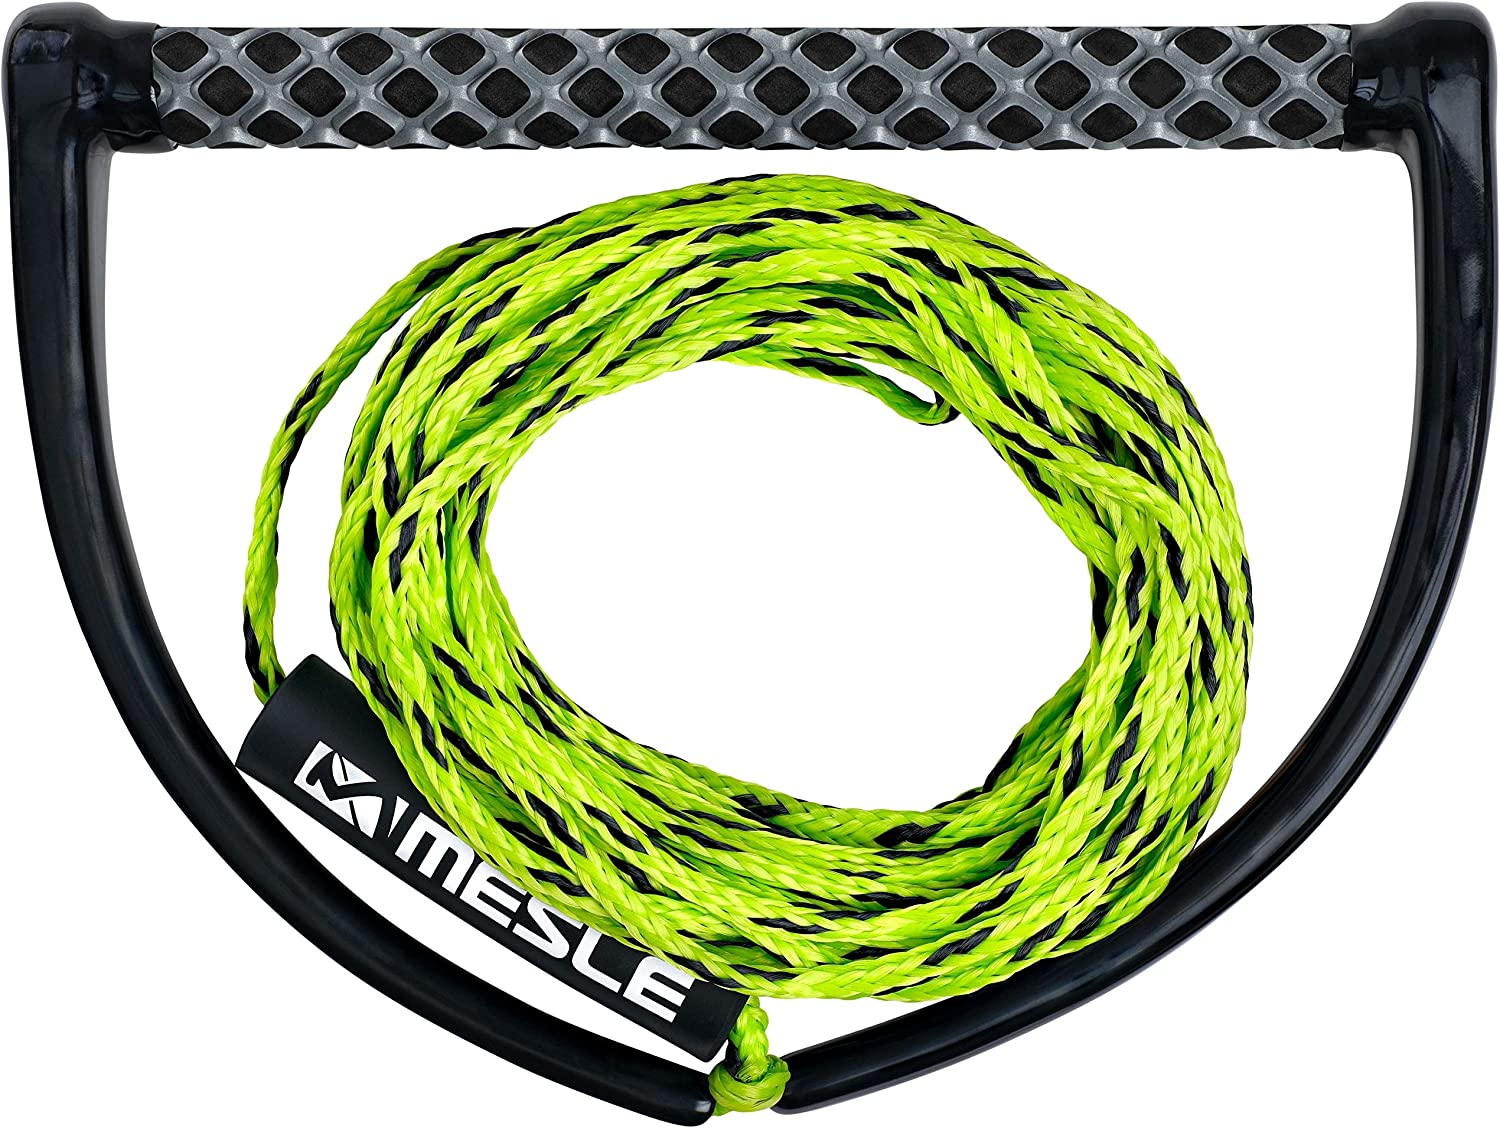 18,3 m watersport boat floating Rope Keeper incl MESLE Wakeboard Rope ONE with 15 Handle EVA Soft Grip Wakeboarding Line Length 16,8 m